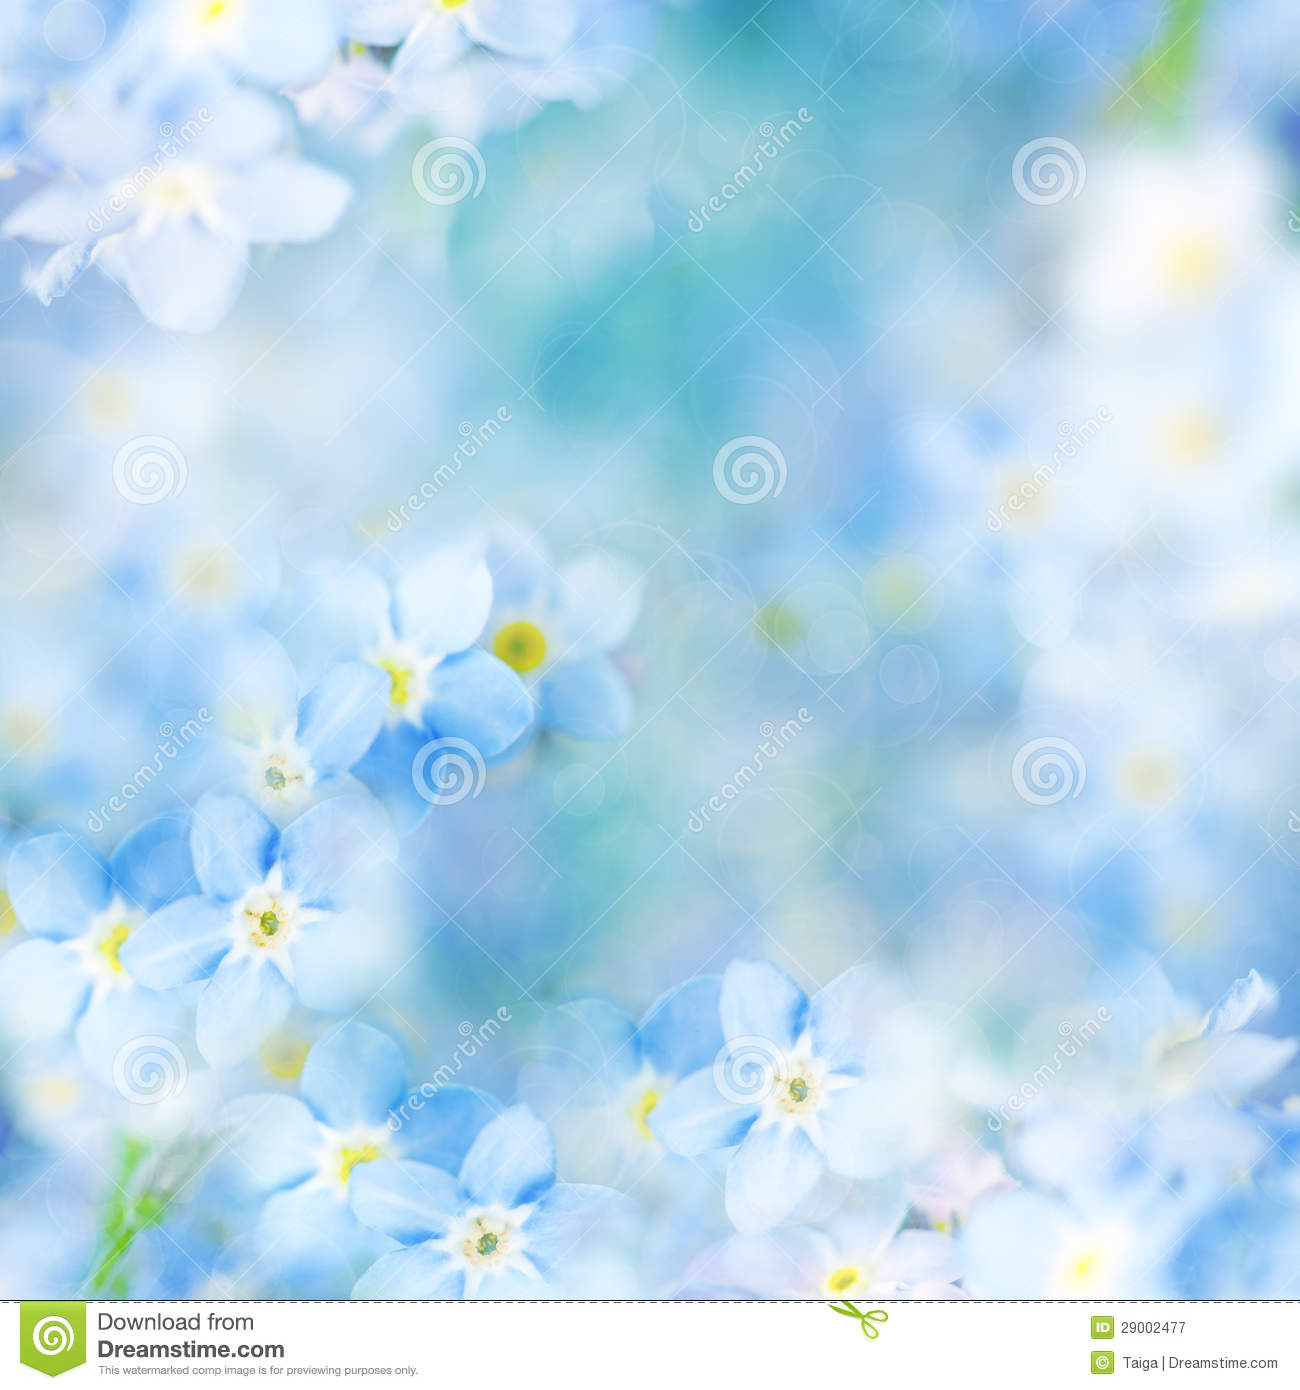 Fantasy Gentle Floral Background Blue Flowers Defocused Royalty Free Stock Photography